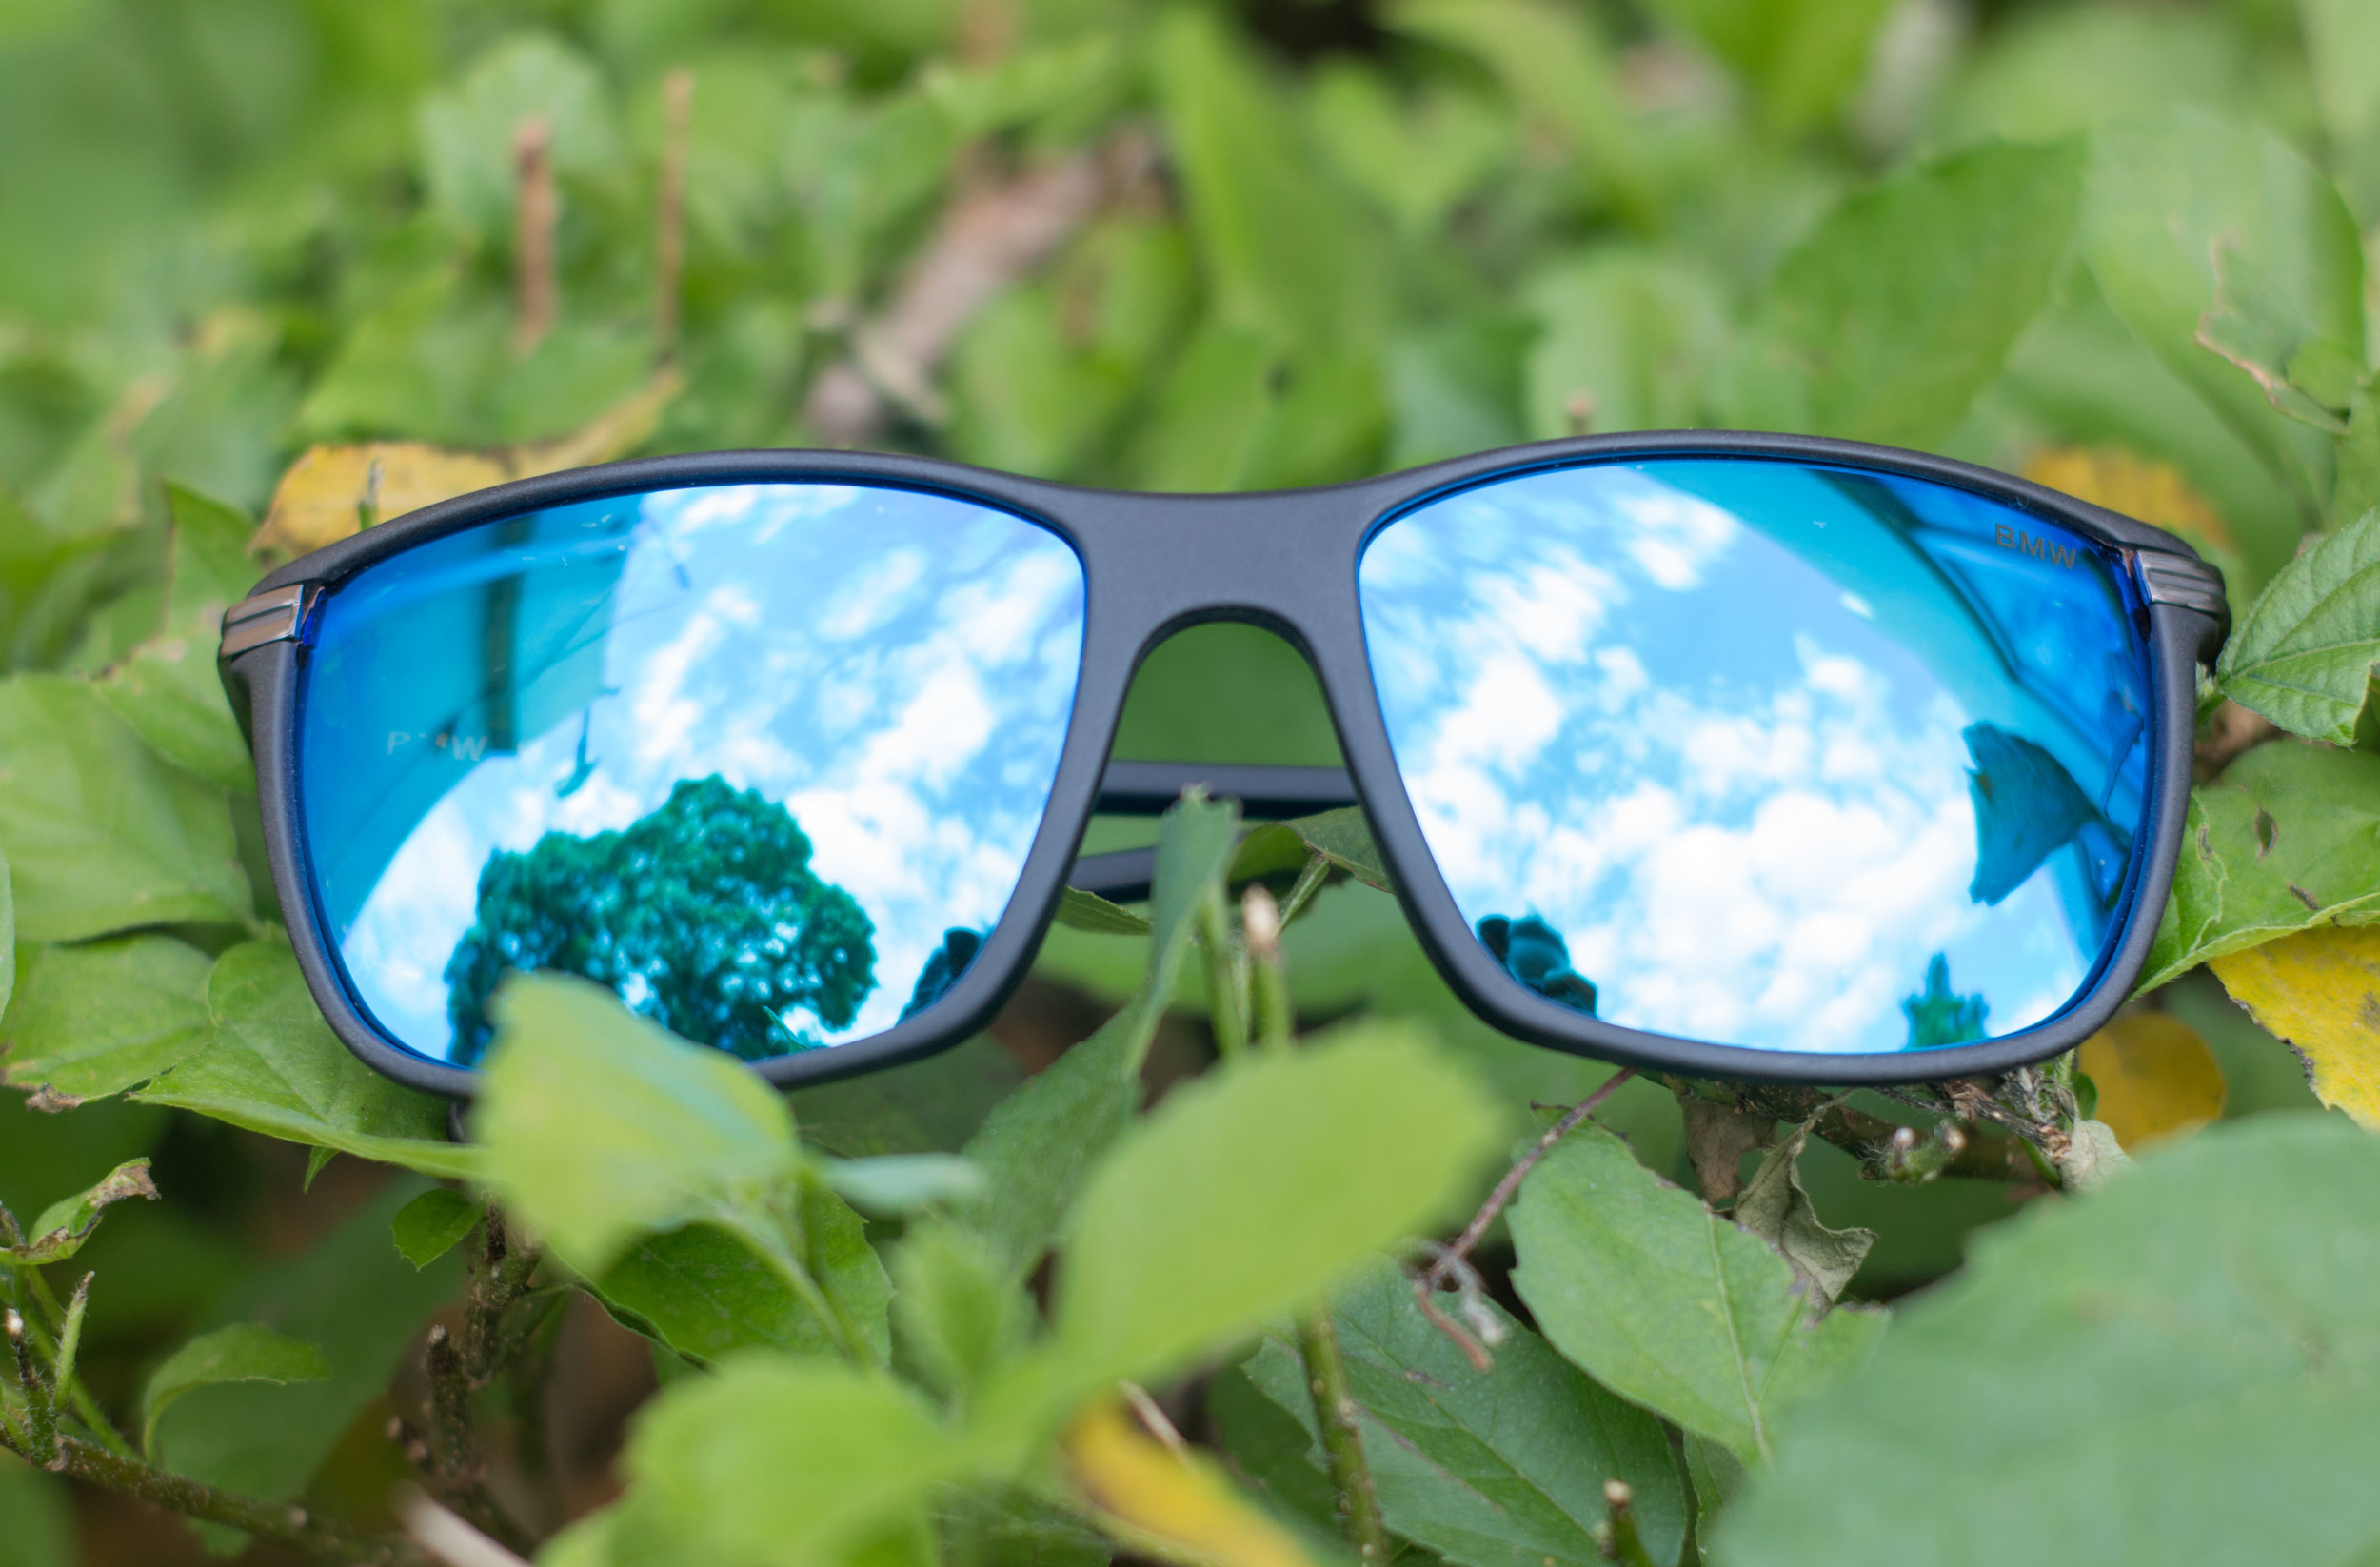 PACKAGE 3 - Package Upgrade  Features: Polarized Lenses for Drivers or Special Frames for ultra-sensitive individuals.